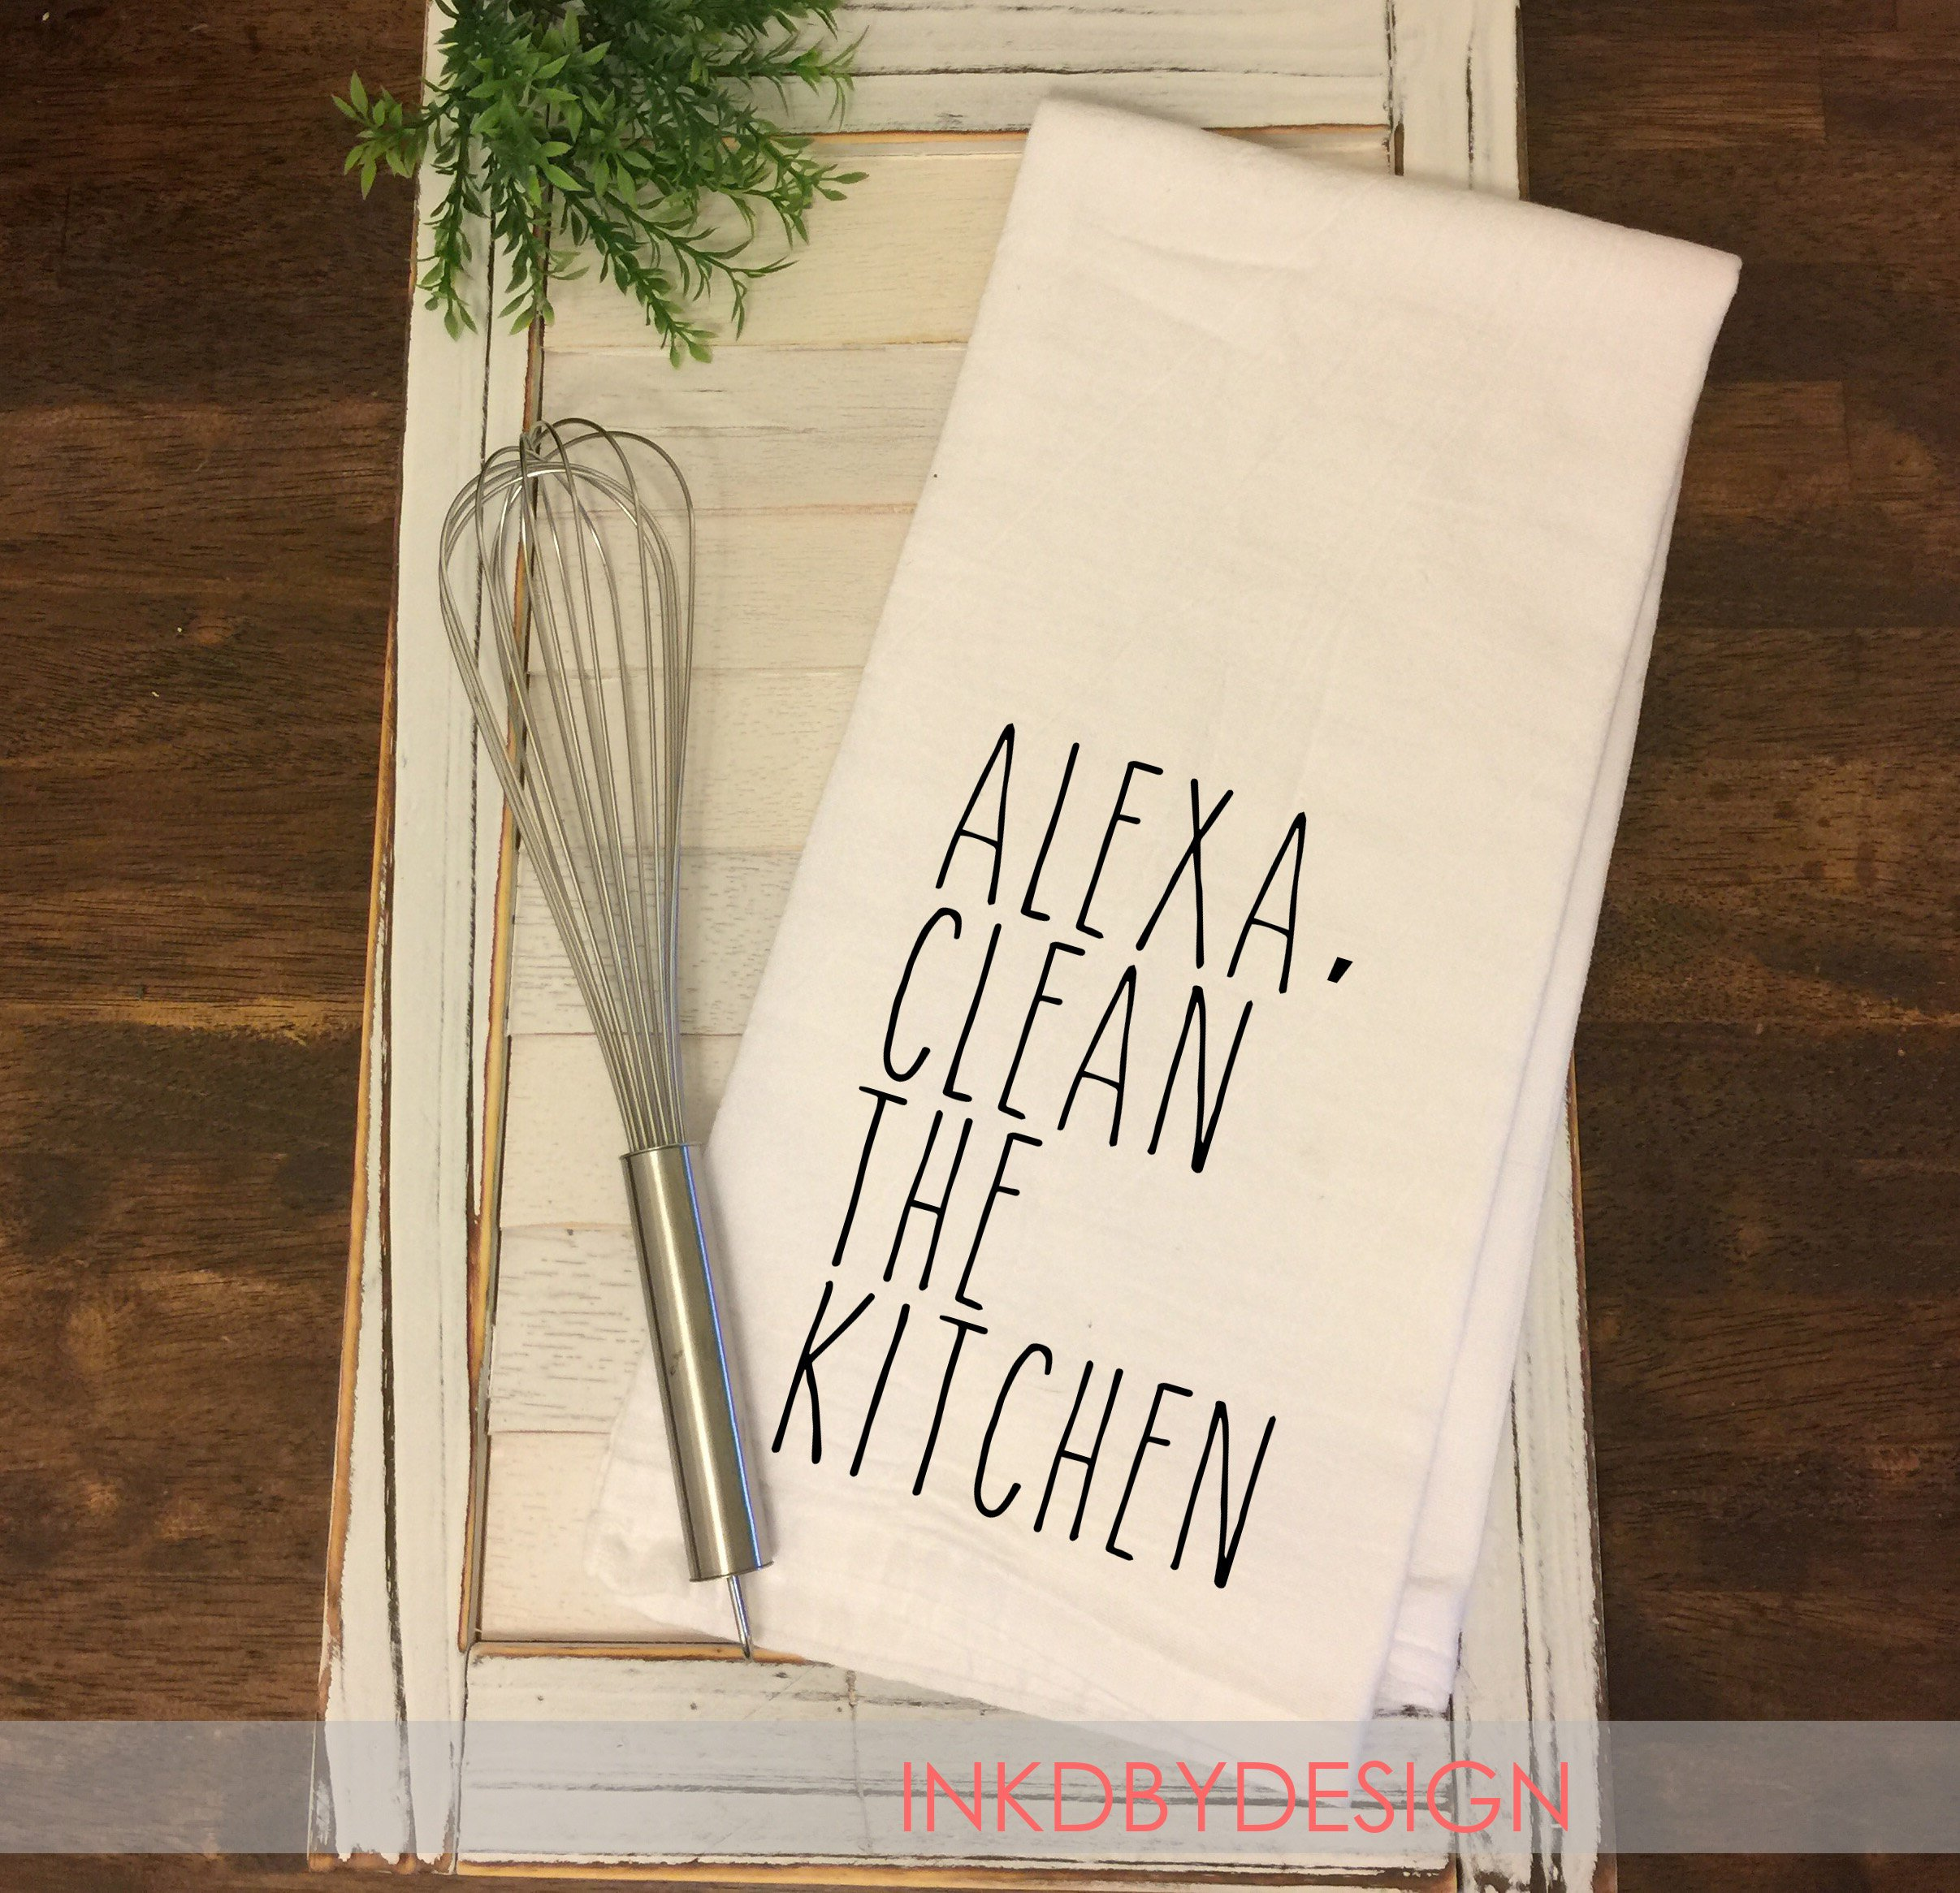 Alexa Clean the Kitchen Flour Sack Dish Towel Funny |Housewarming |Wedding Gift | Friend Gift | Womens Gift |Birthday Gift |Decorative Towel #dishtowels